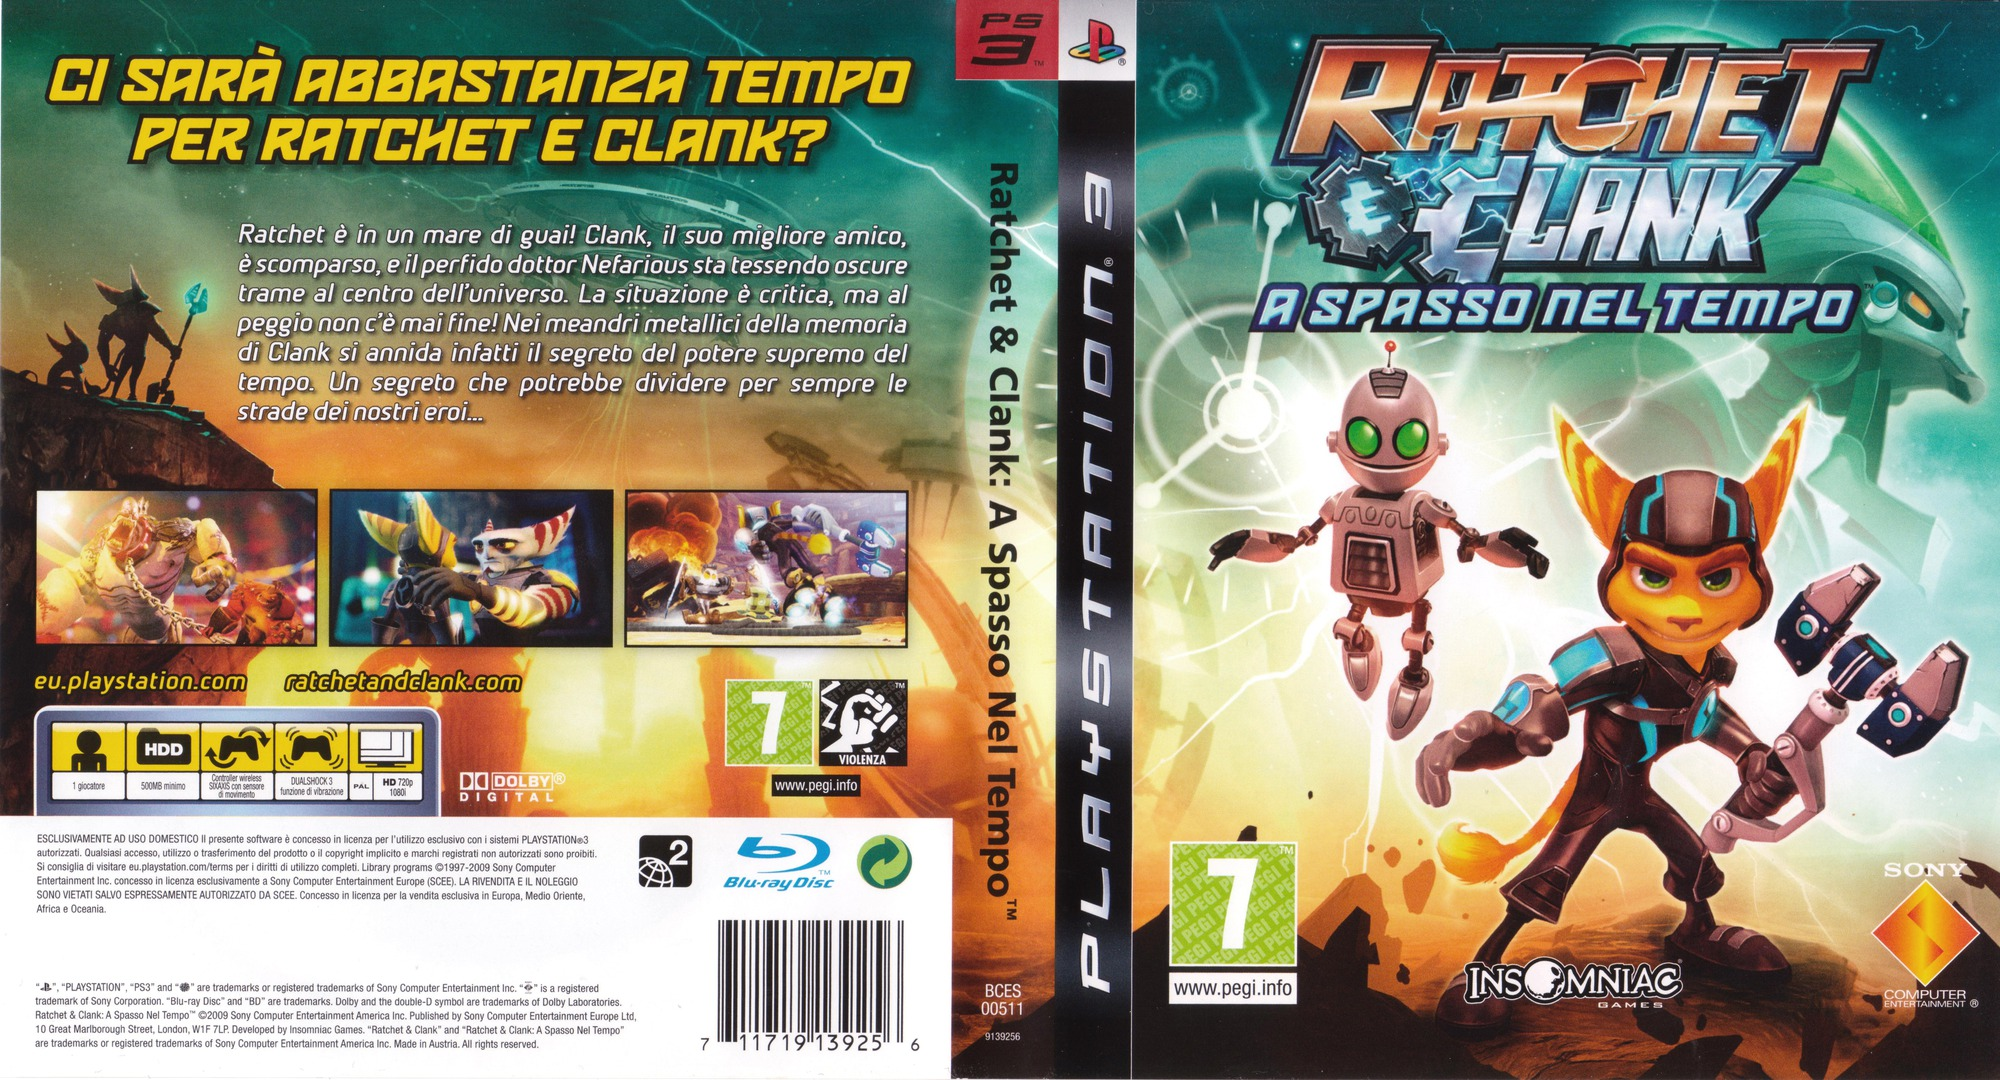 Ratchet & Clank: A spasso nel tempo PS3 coverfullHQ (BCES00511)